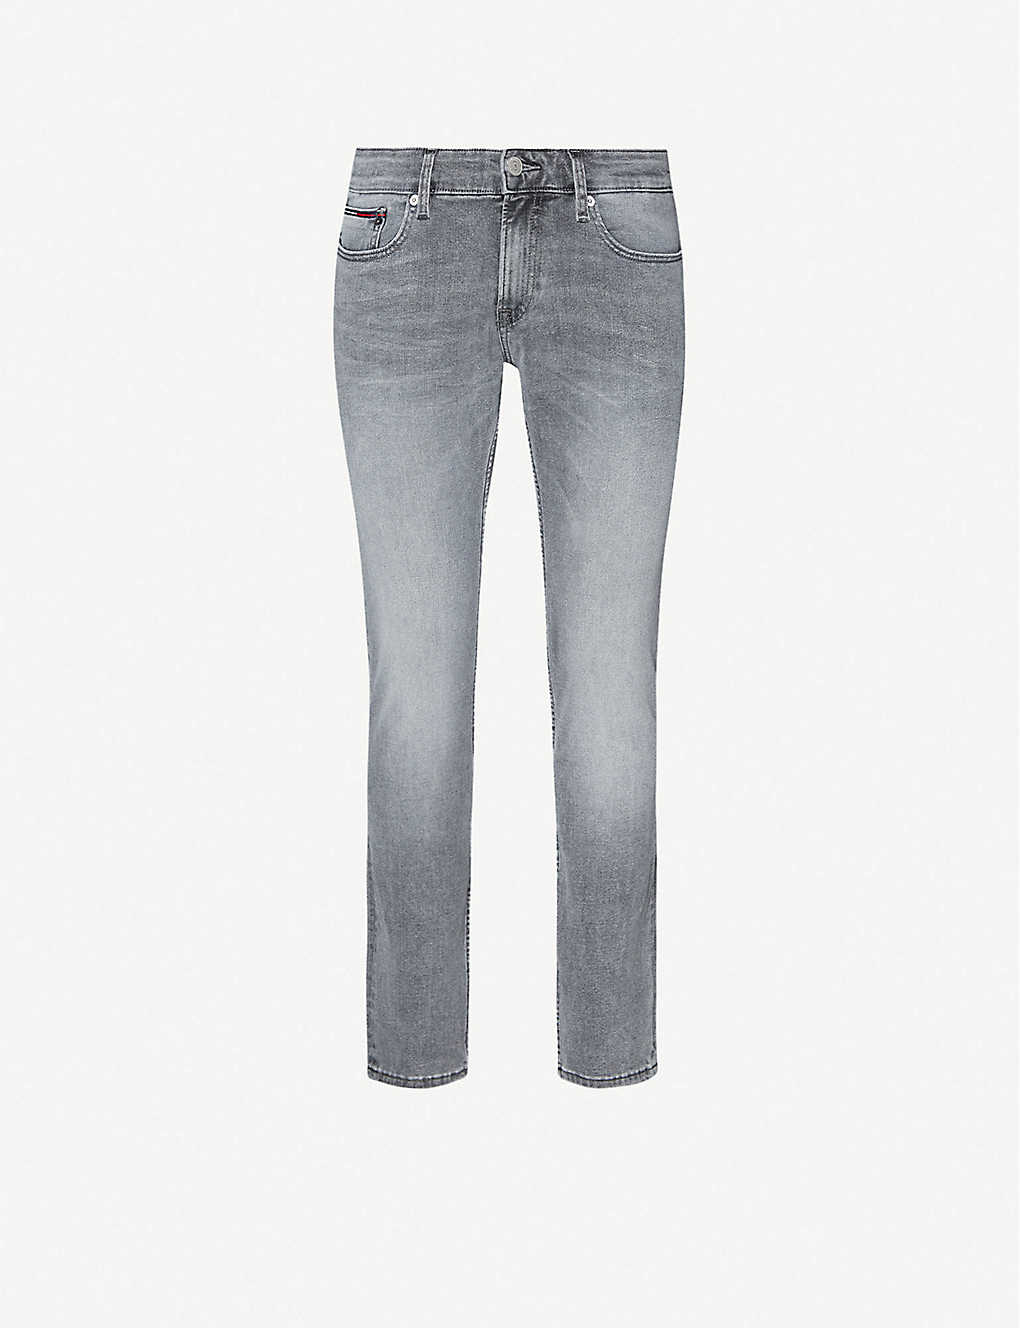 TOMMY JEANS: Scanton faded straight jeans